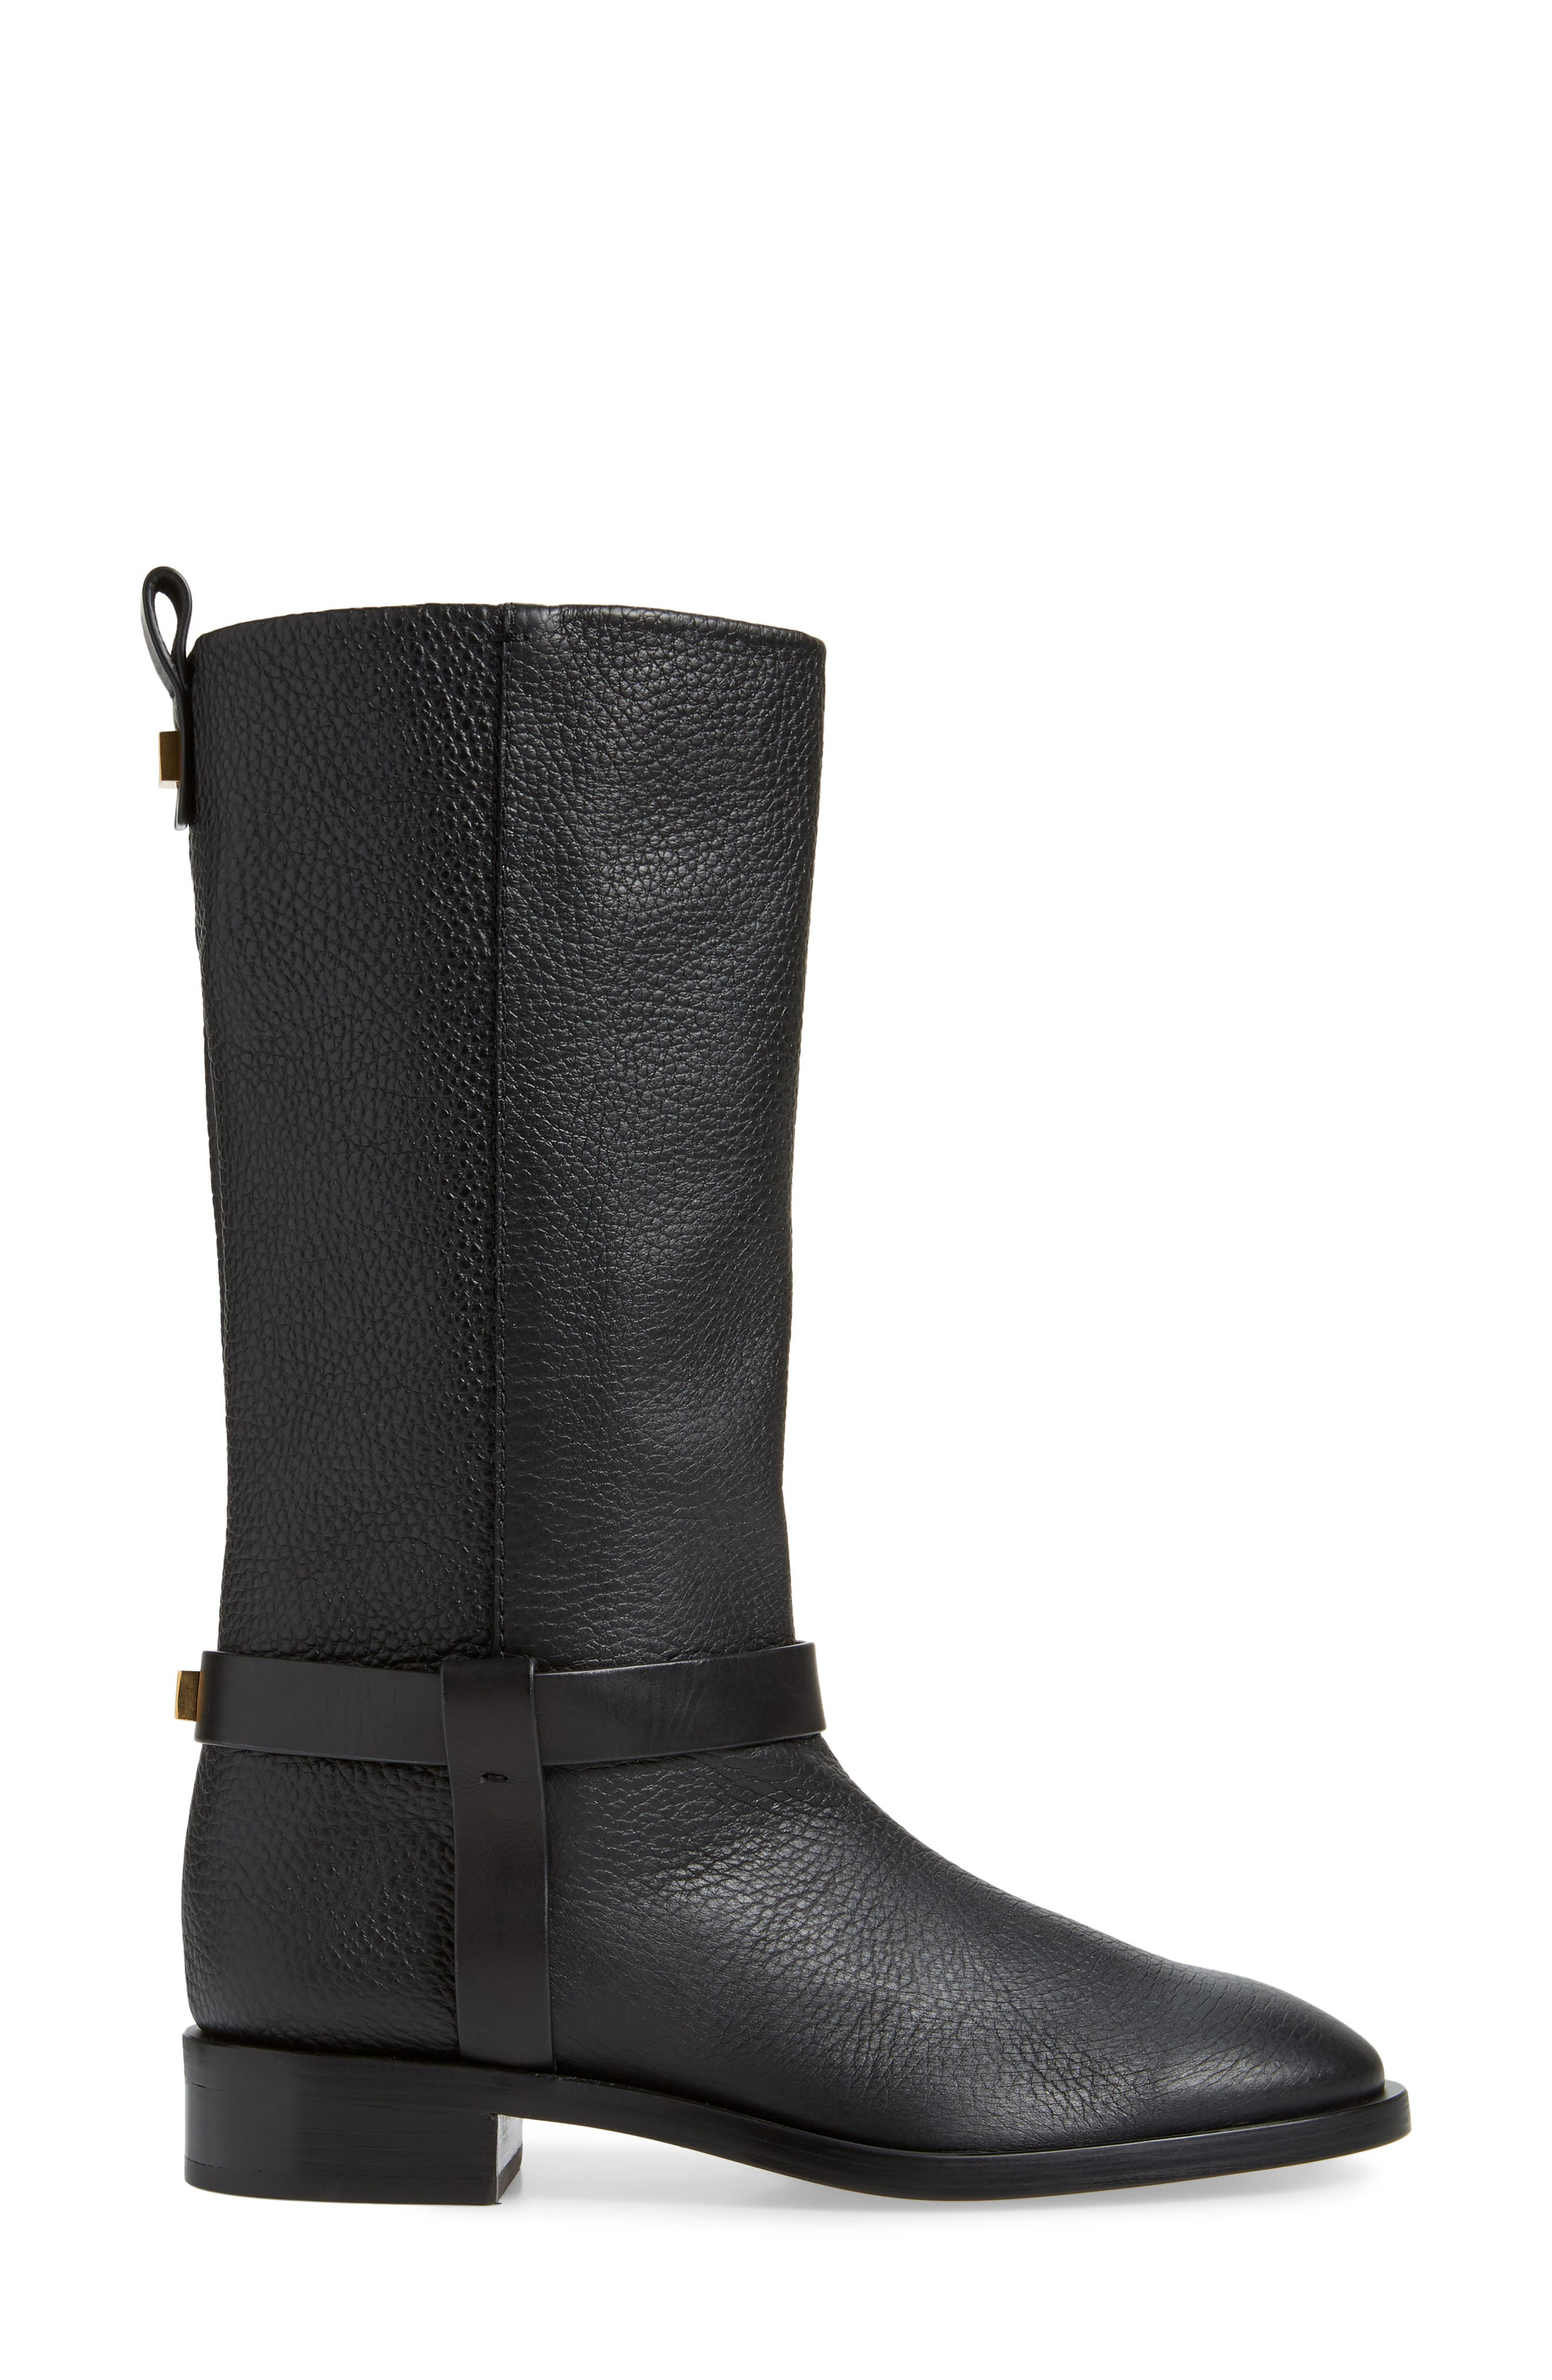 Casey Harness Boot,                             Alternate thumbnail 3, color,                             PITCH BLACK WESTPORT